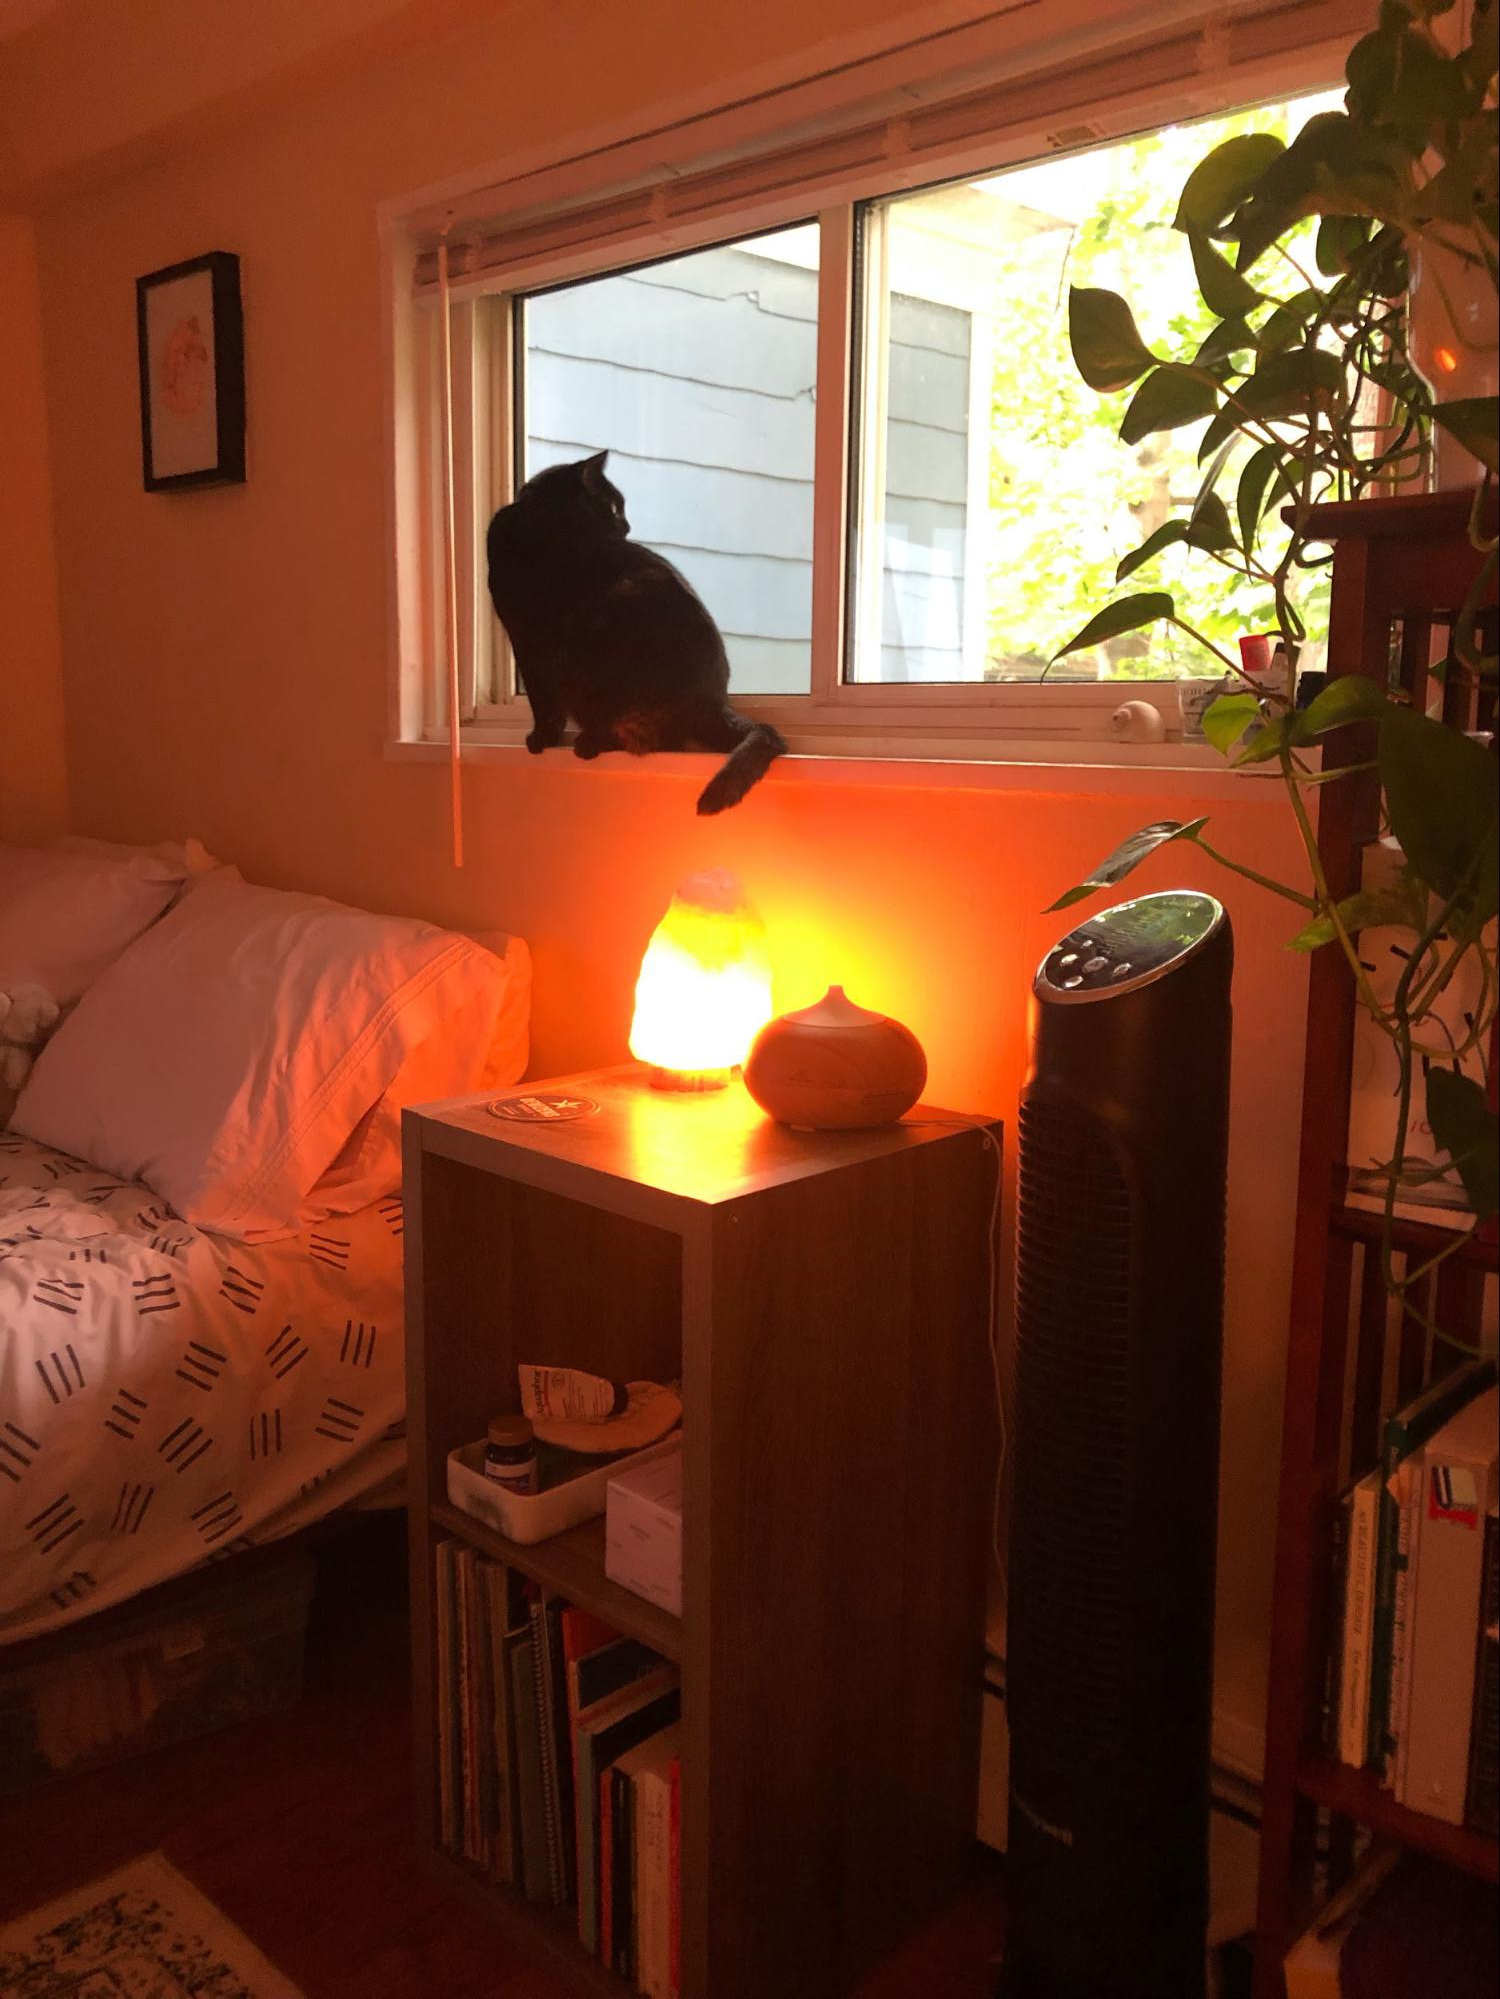 A picture of the author's bed and bedside table during the day. A salt lamp provides dim lighting and her cat sits on the window sill.